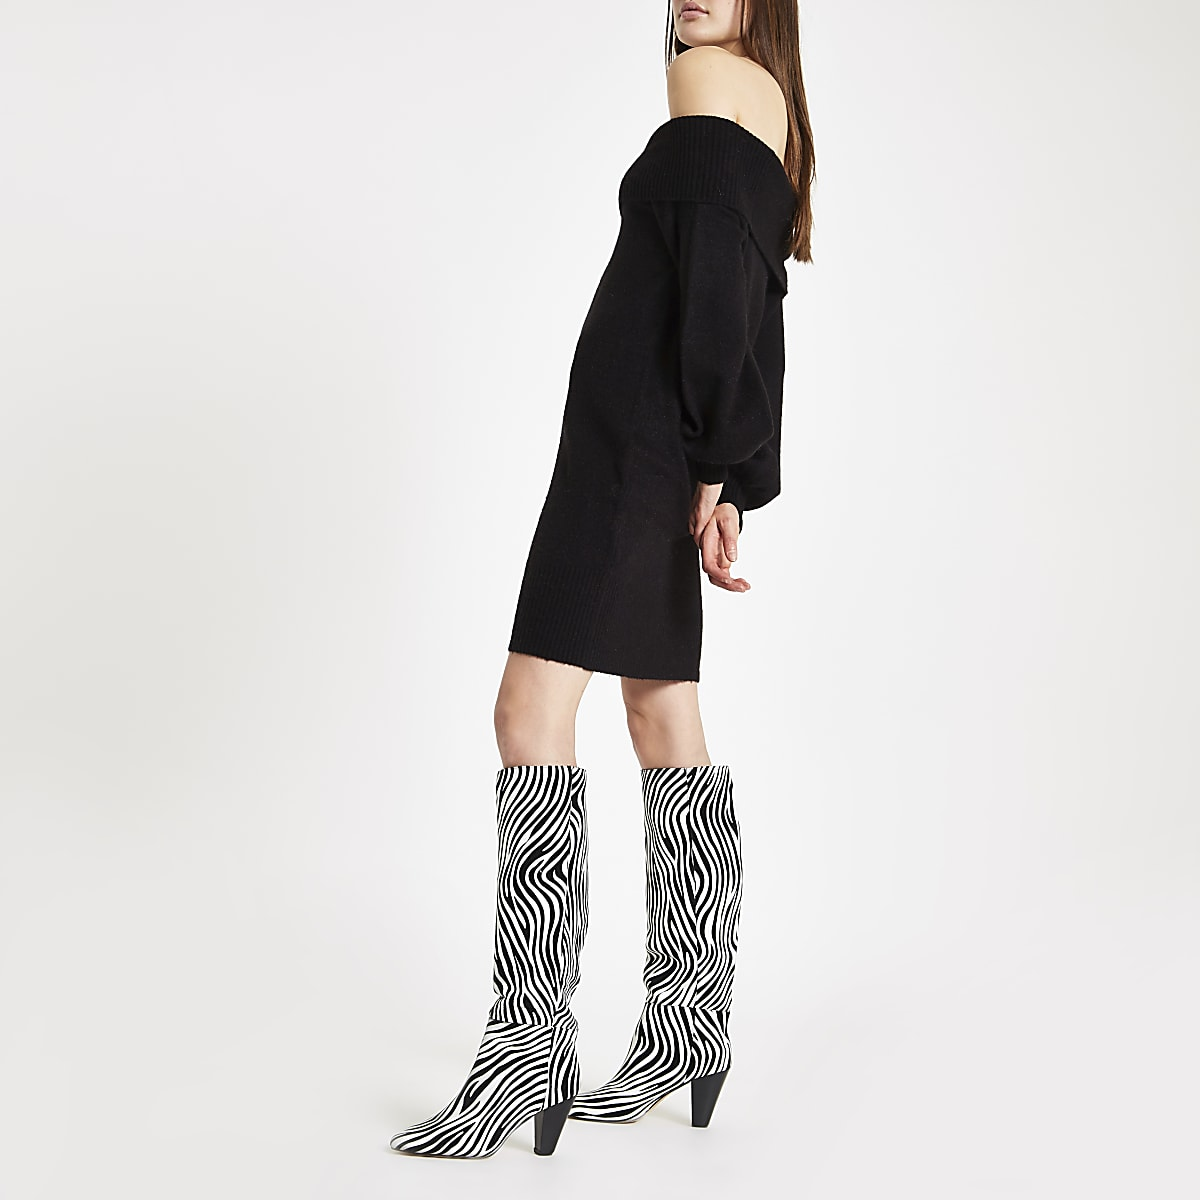 f6efe860a8a1 Black leather zebra print over the knee boots - Boots - Shoes ...